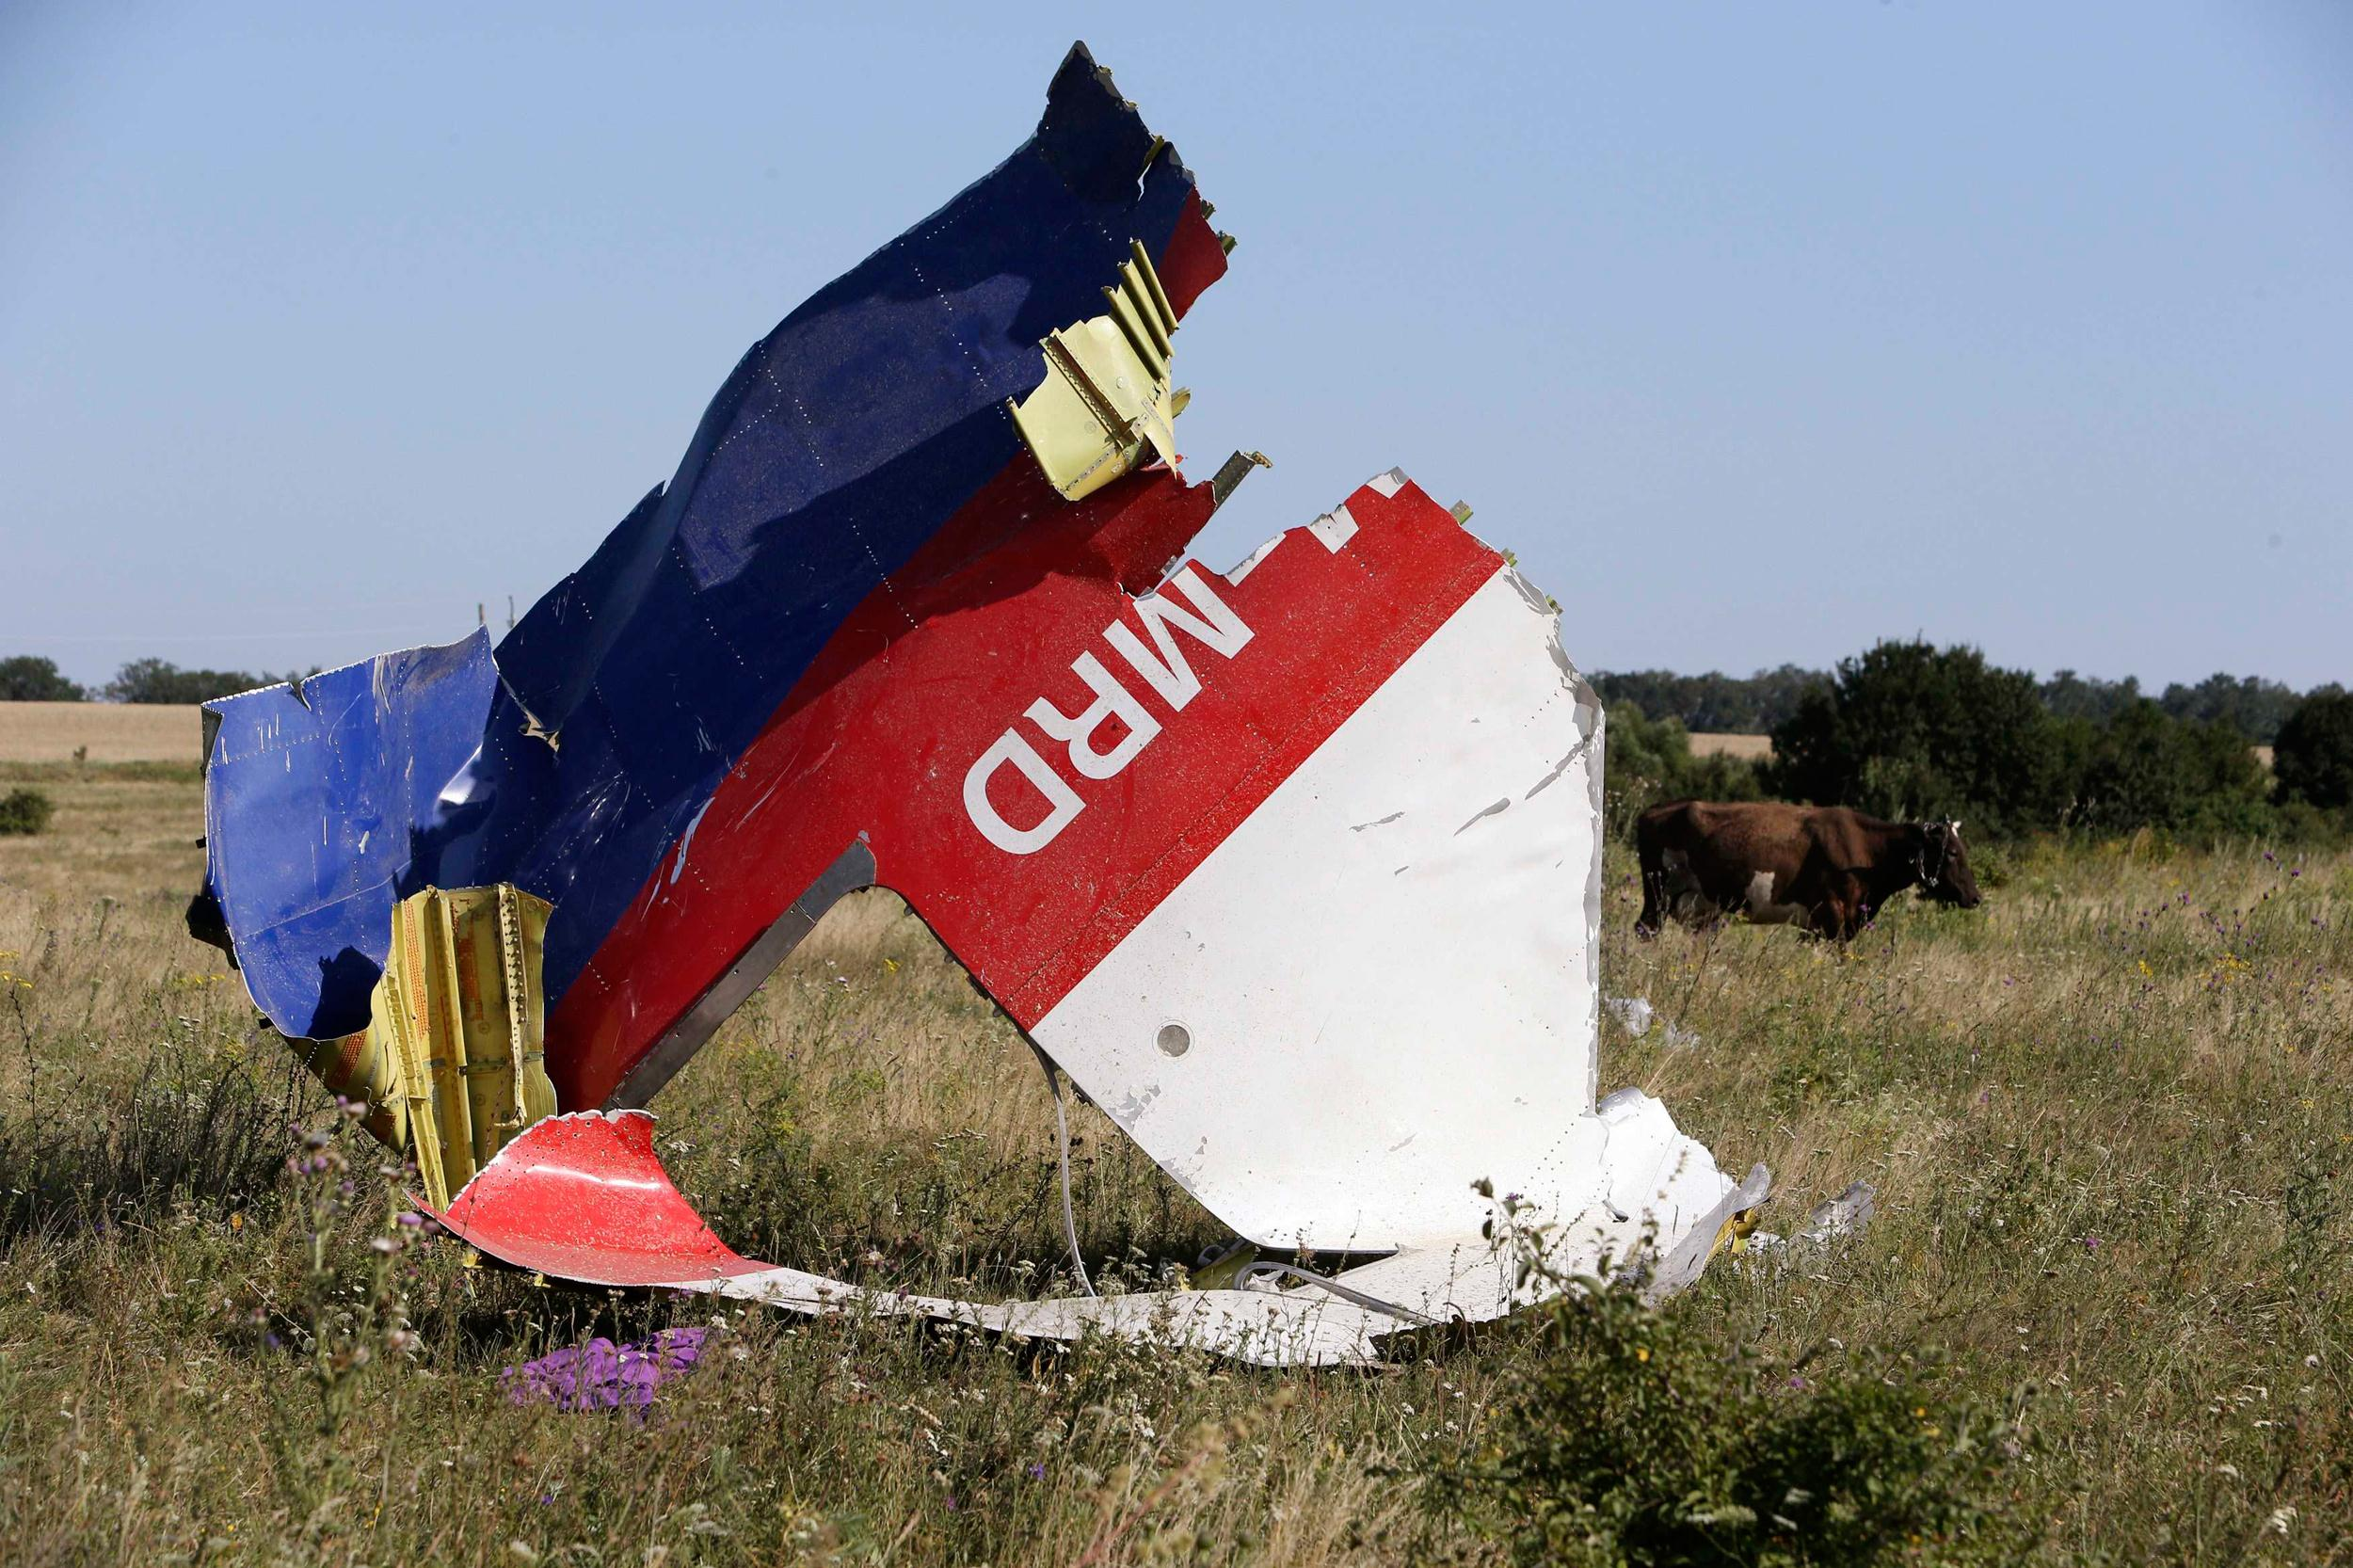 Image: Cows graze near the wreckage at the crash site of Malaysia Airlines Flight MH17 near the village of Hrabove (Grabovo)